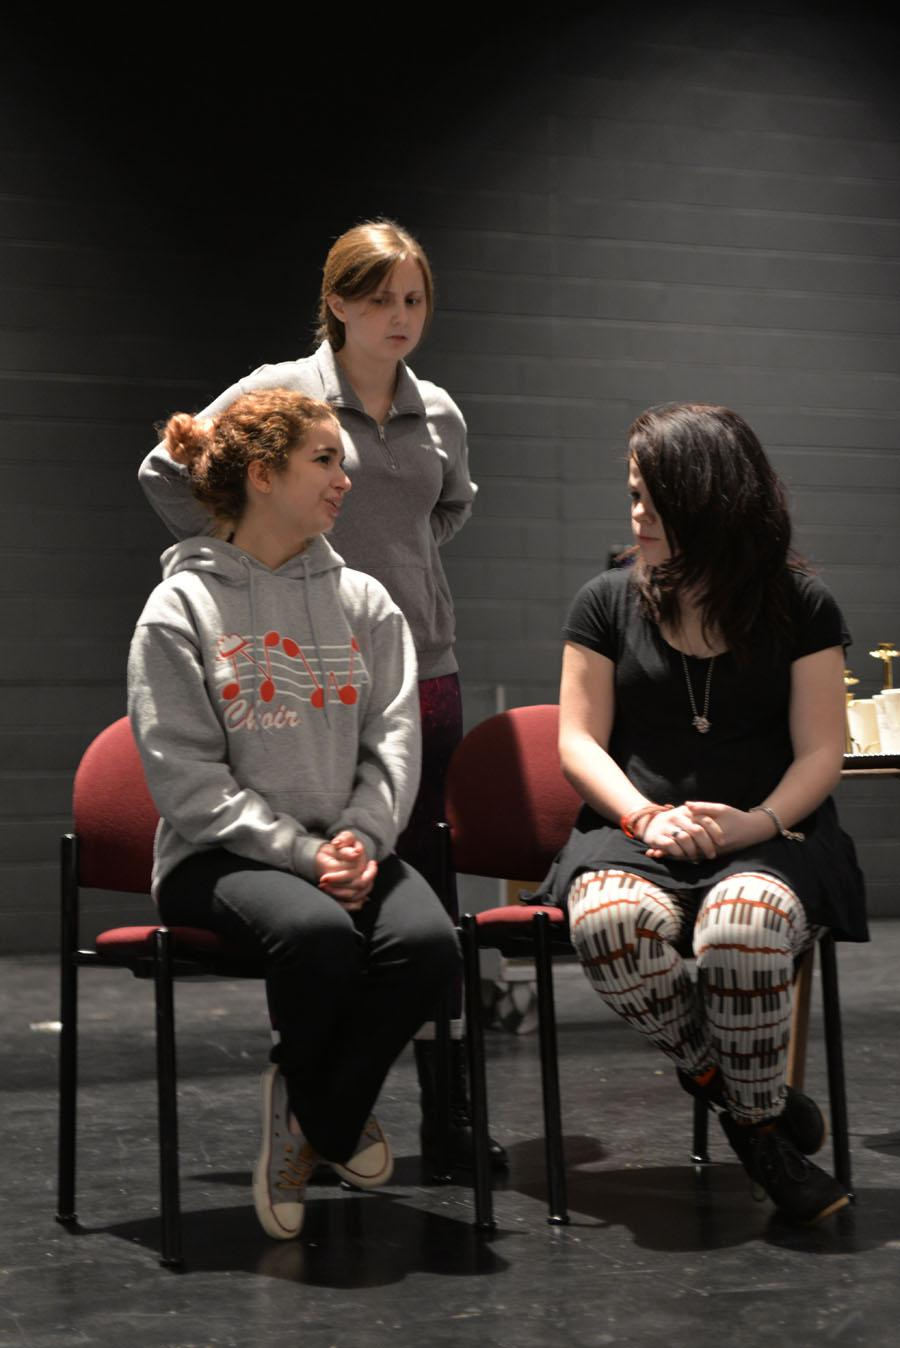 Senior Sophi Epstein, senior Genna Barner, and junior Kate Romkee rehearse a scene where Elaine is angered by the Aunt's belief that they are murdering people out of mercy.